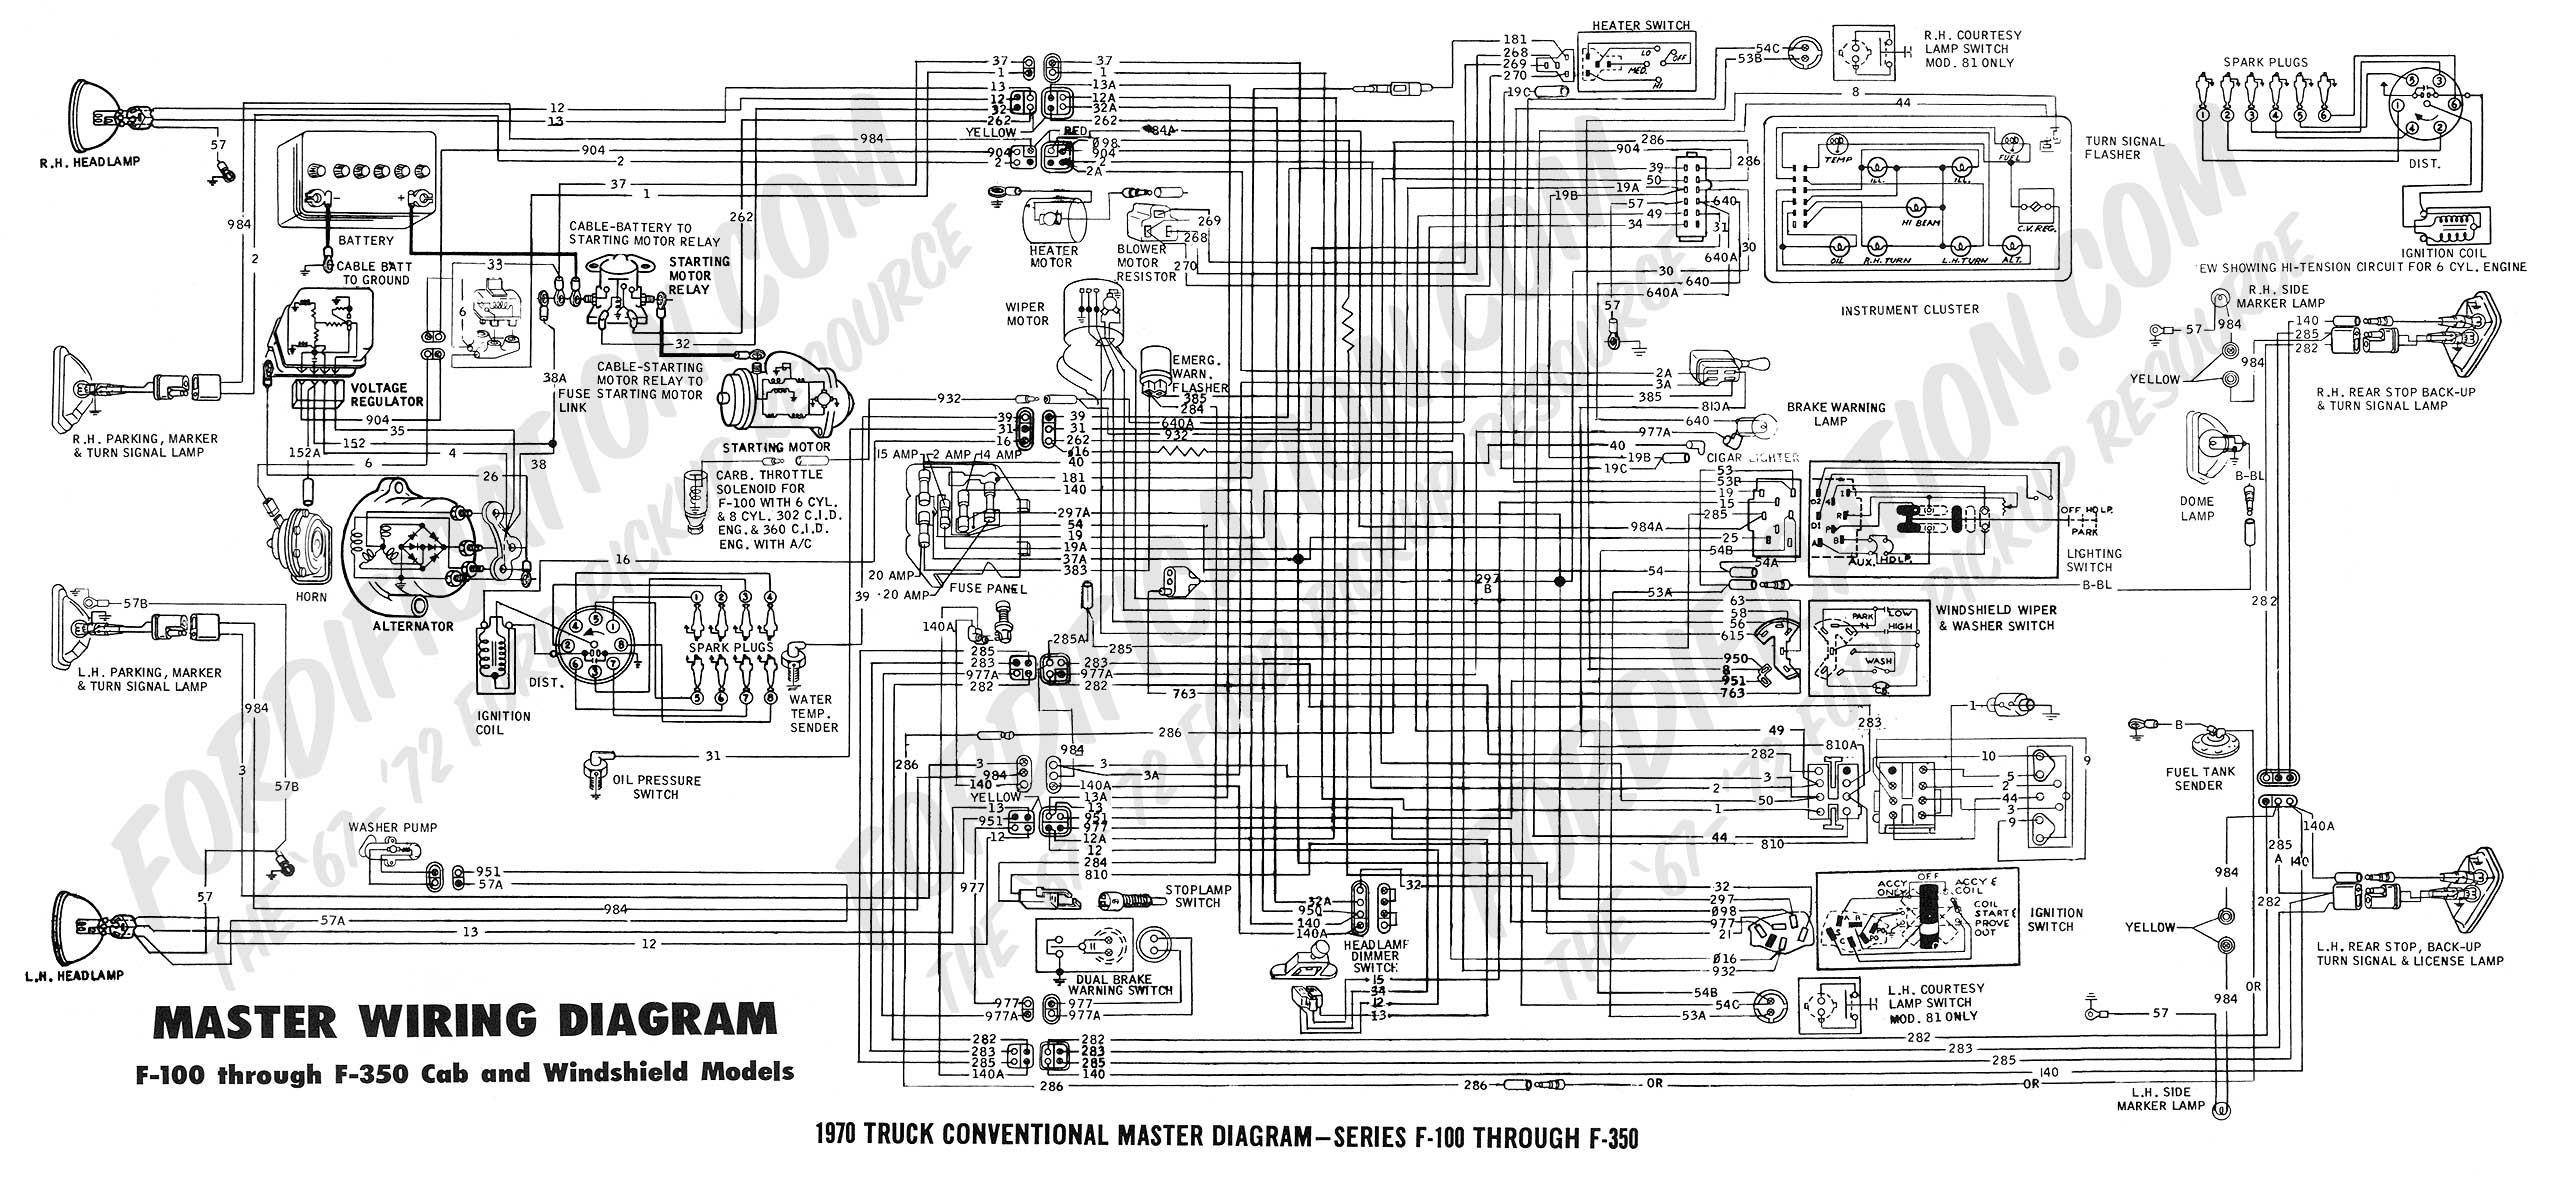 wiring diagram 70_master 1986 ford f150 wiring diagram 1986 ford bronco ii wiring diagram 1986 toyota wiring diagram at alyssarenee.co